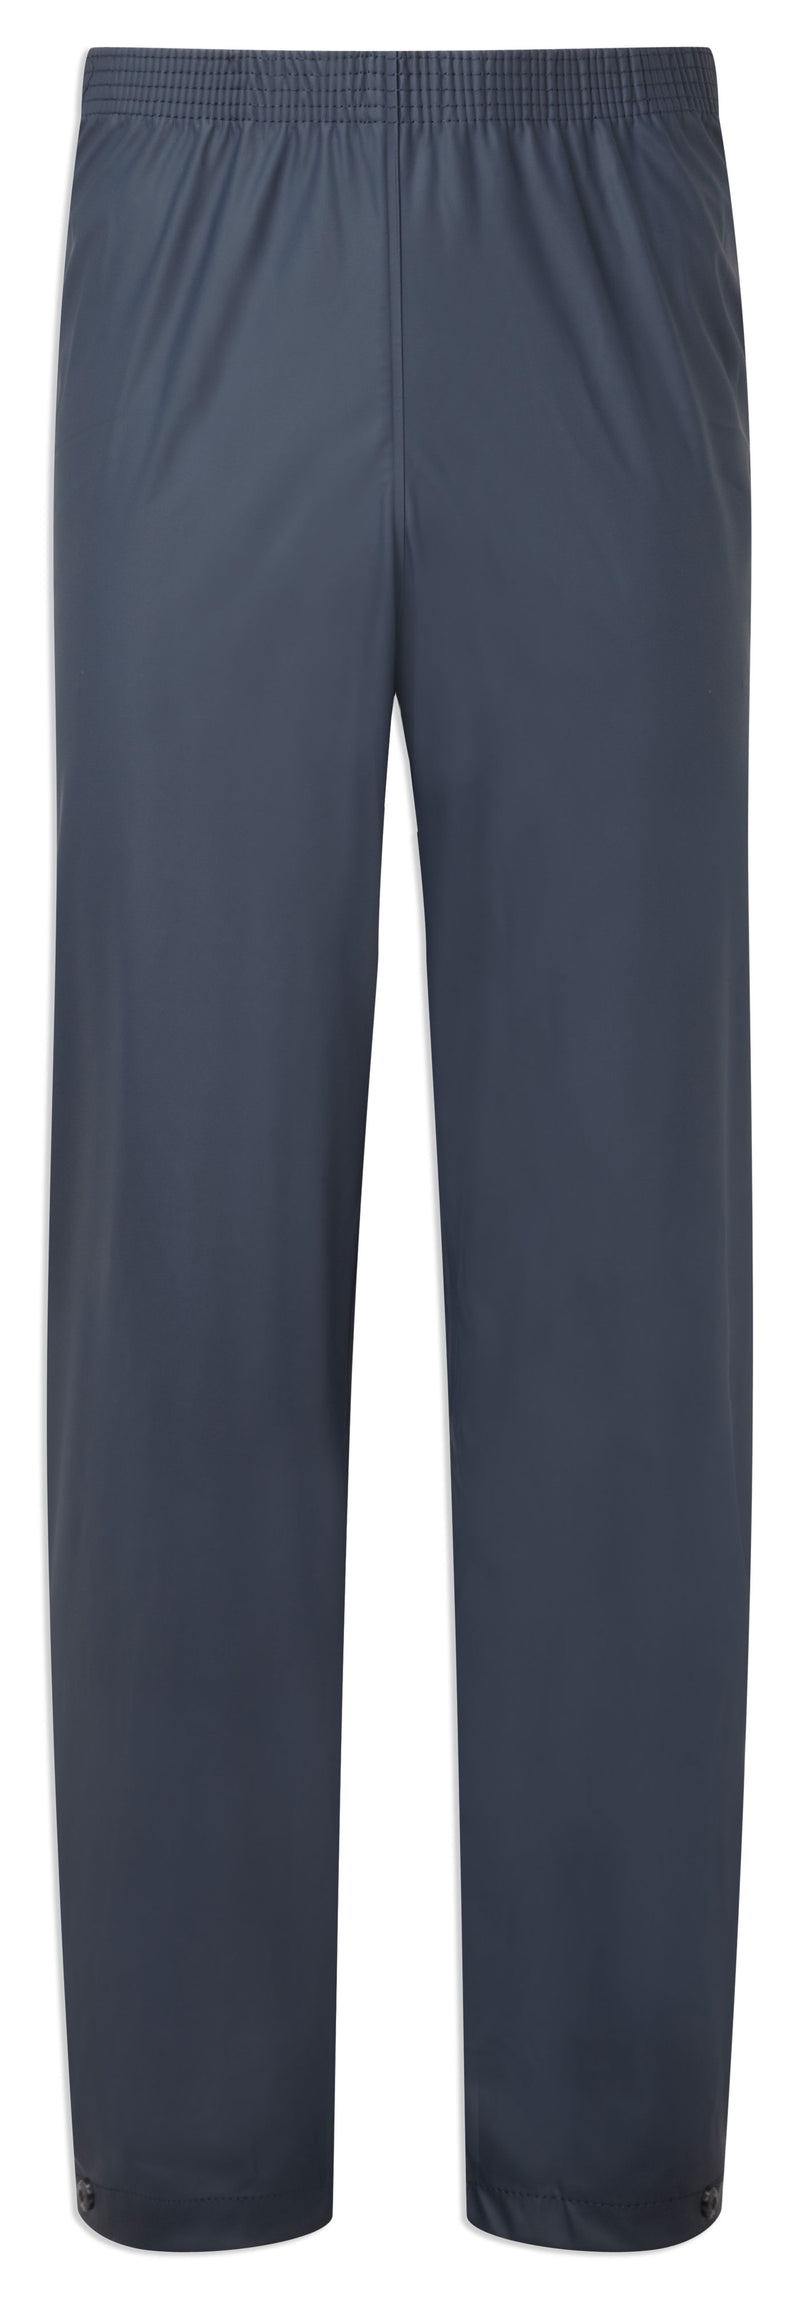 fortex waterproof trousers for farmers